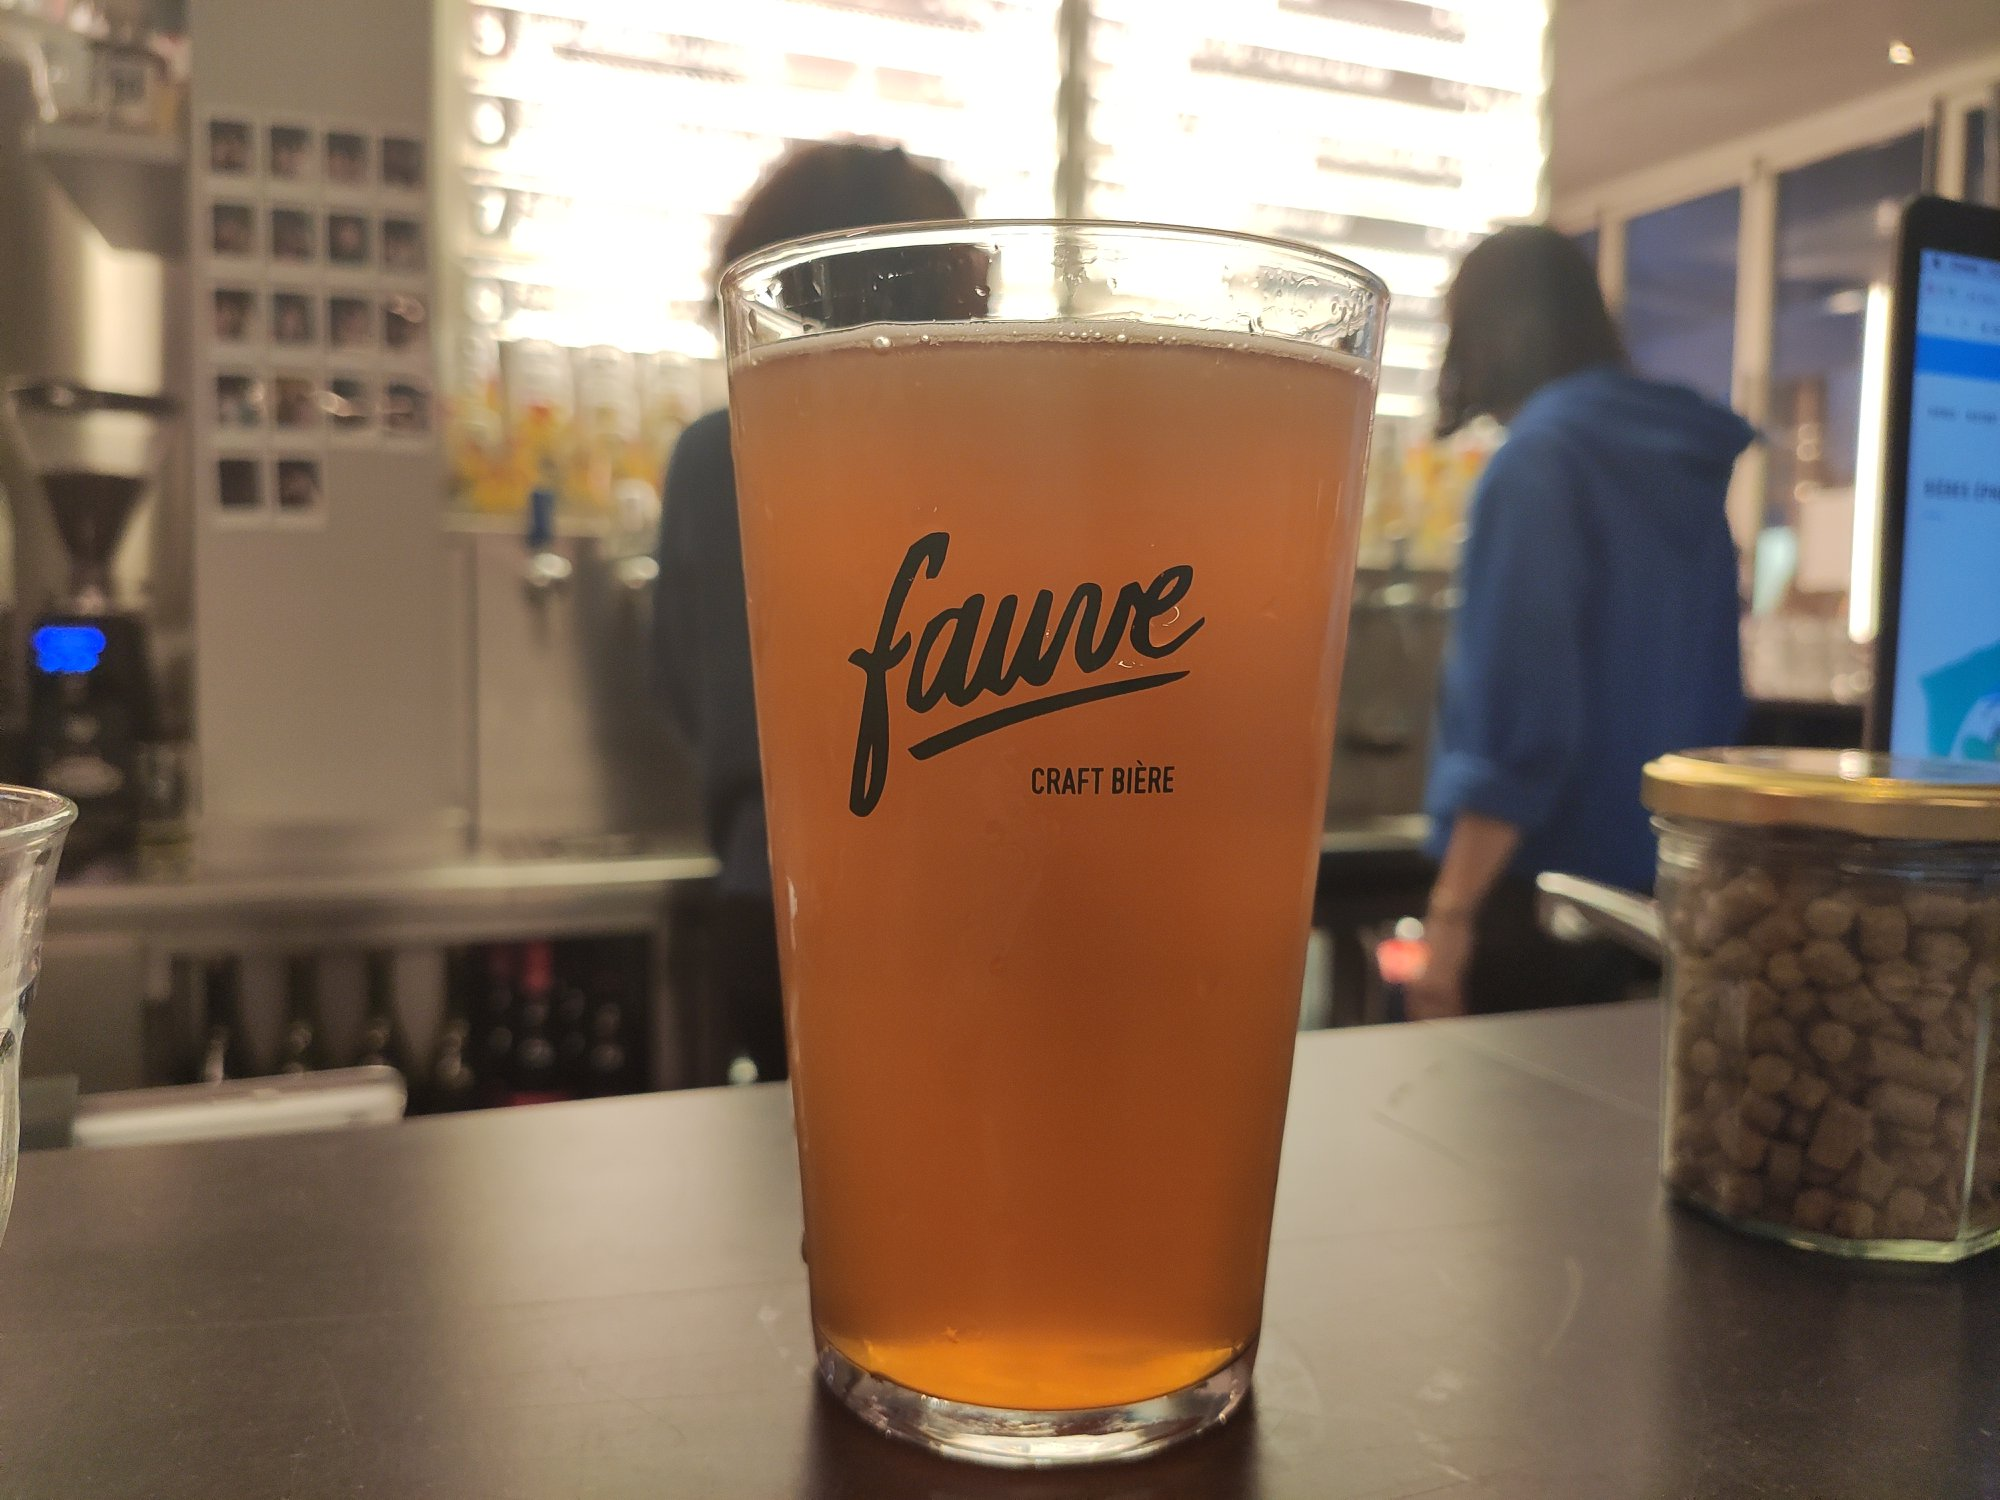 Les Cuves de Fauve - West Coast IPA